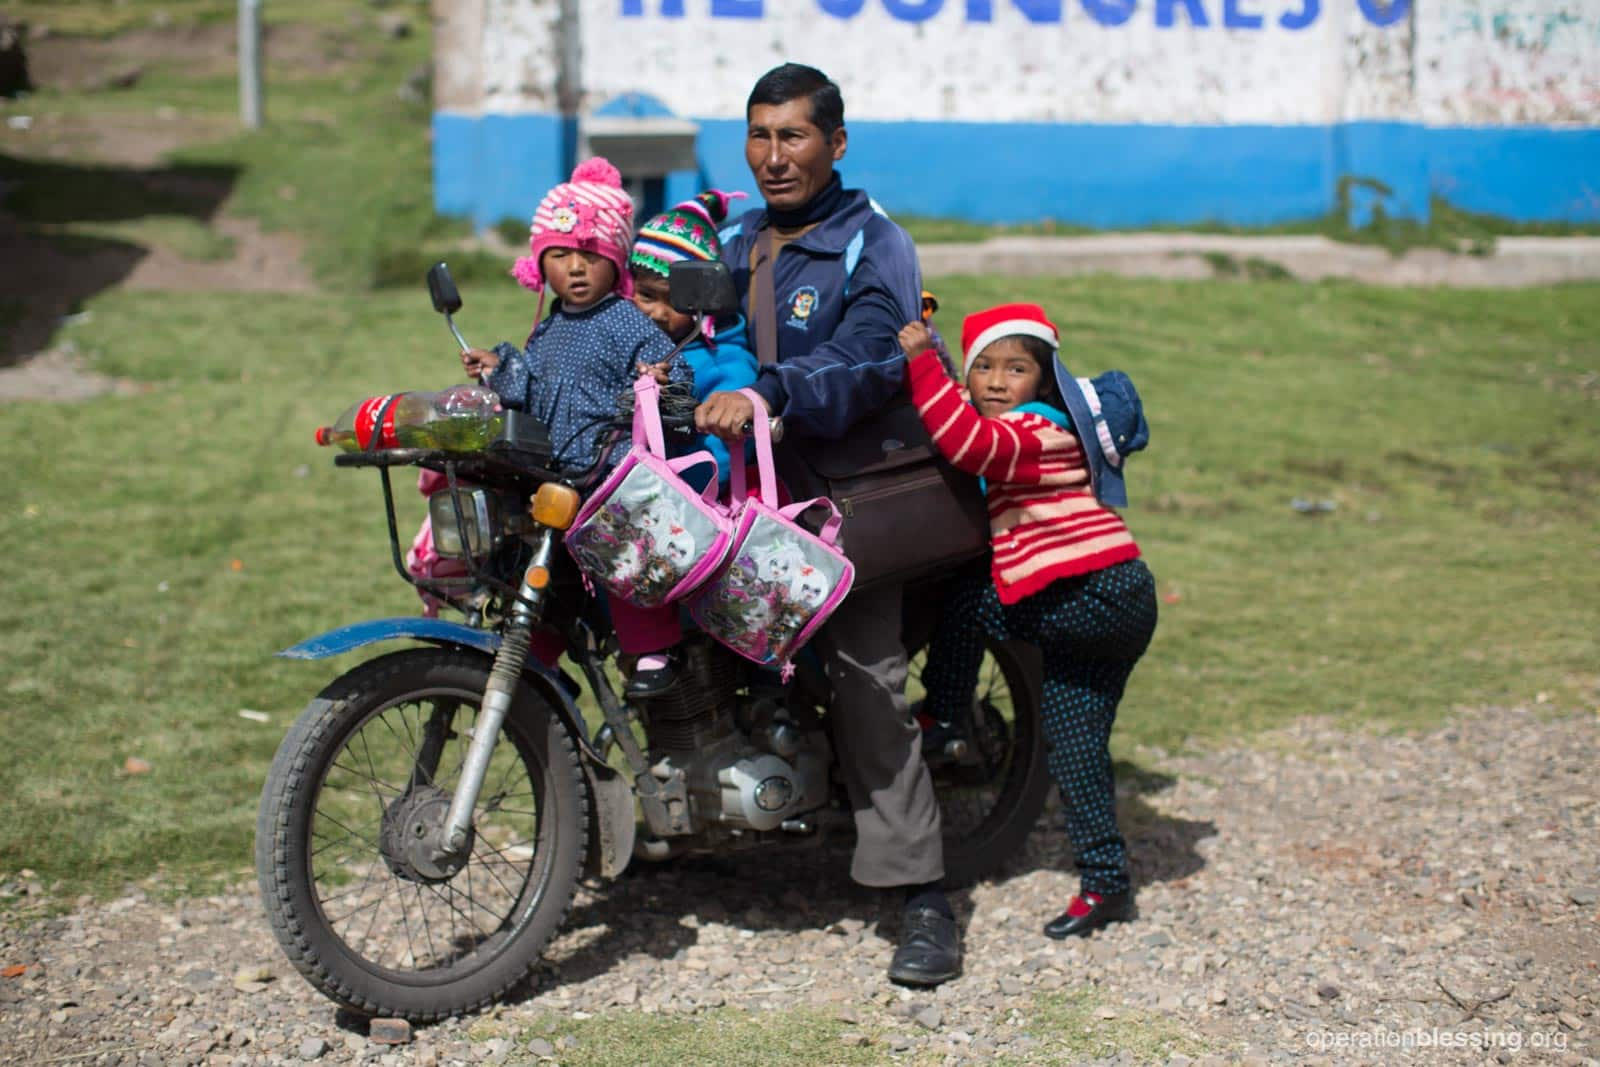 This dedicated preschool teacher in Peru picks up his students on his motorcycle, piling on several at one time.